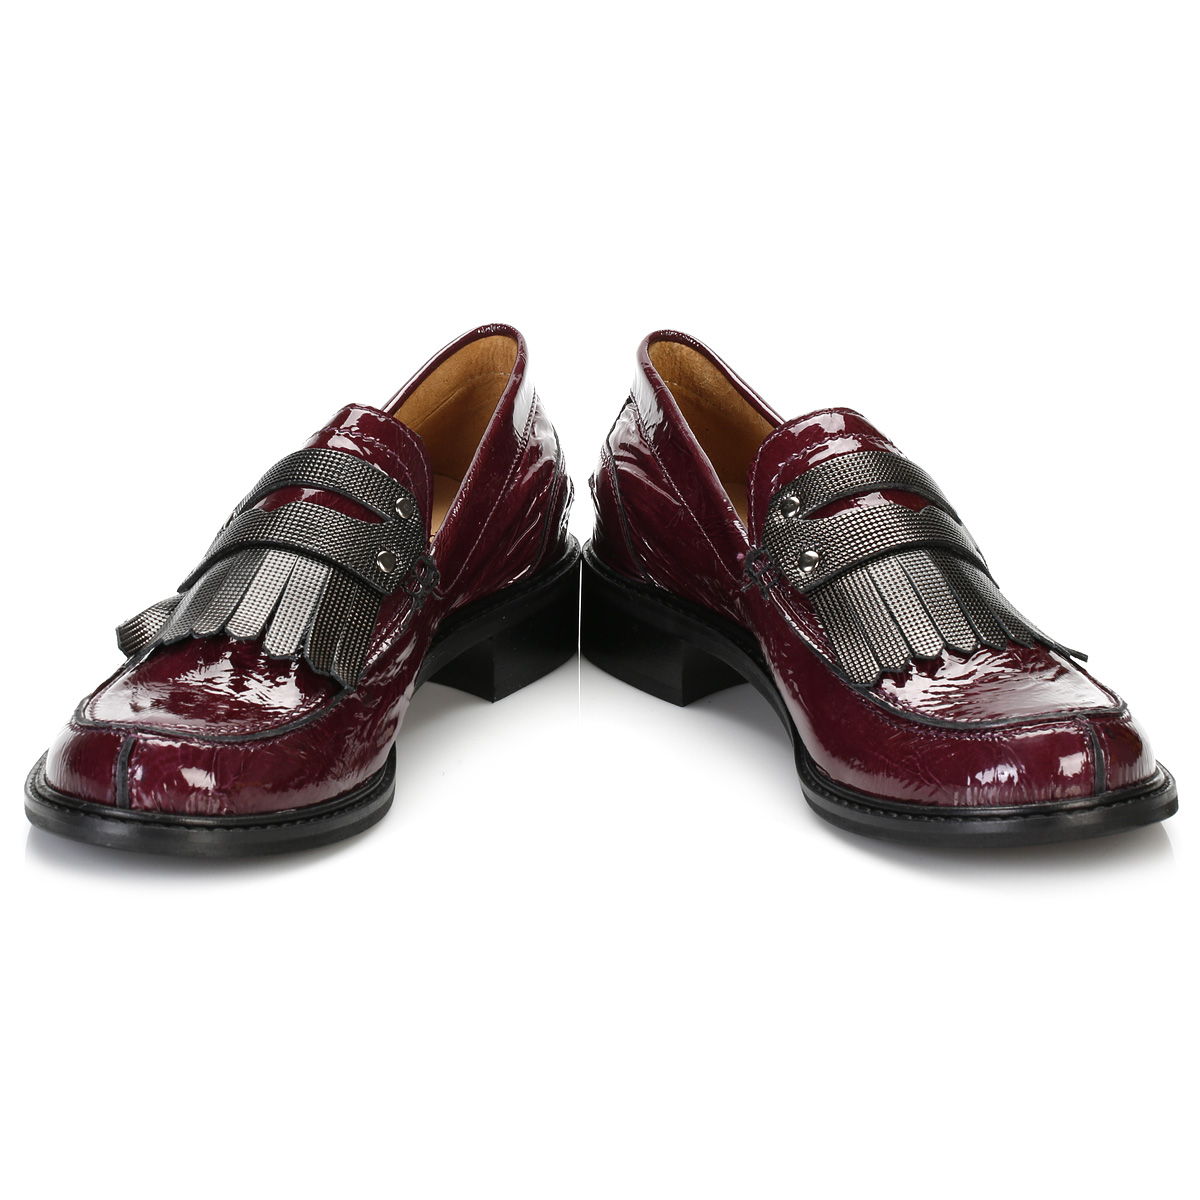 Red Patent Leather Shoes Uk